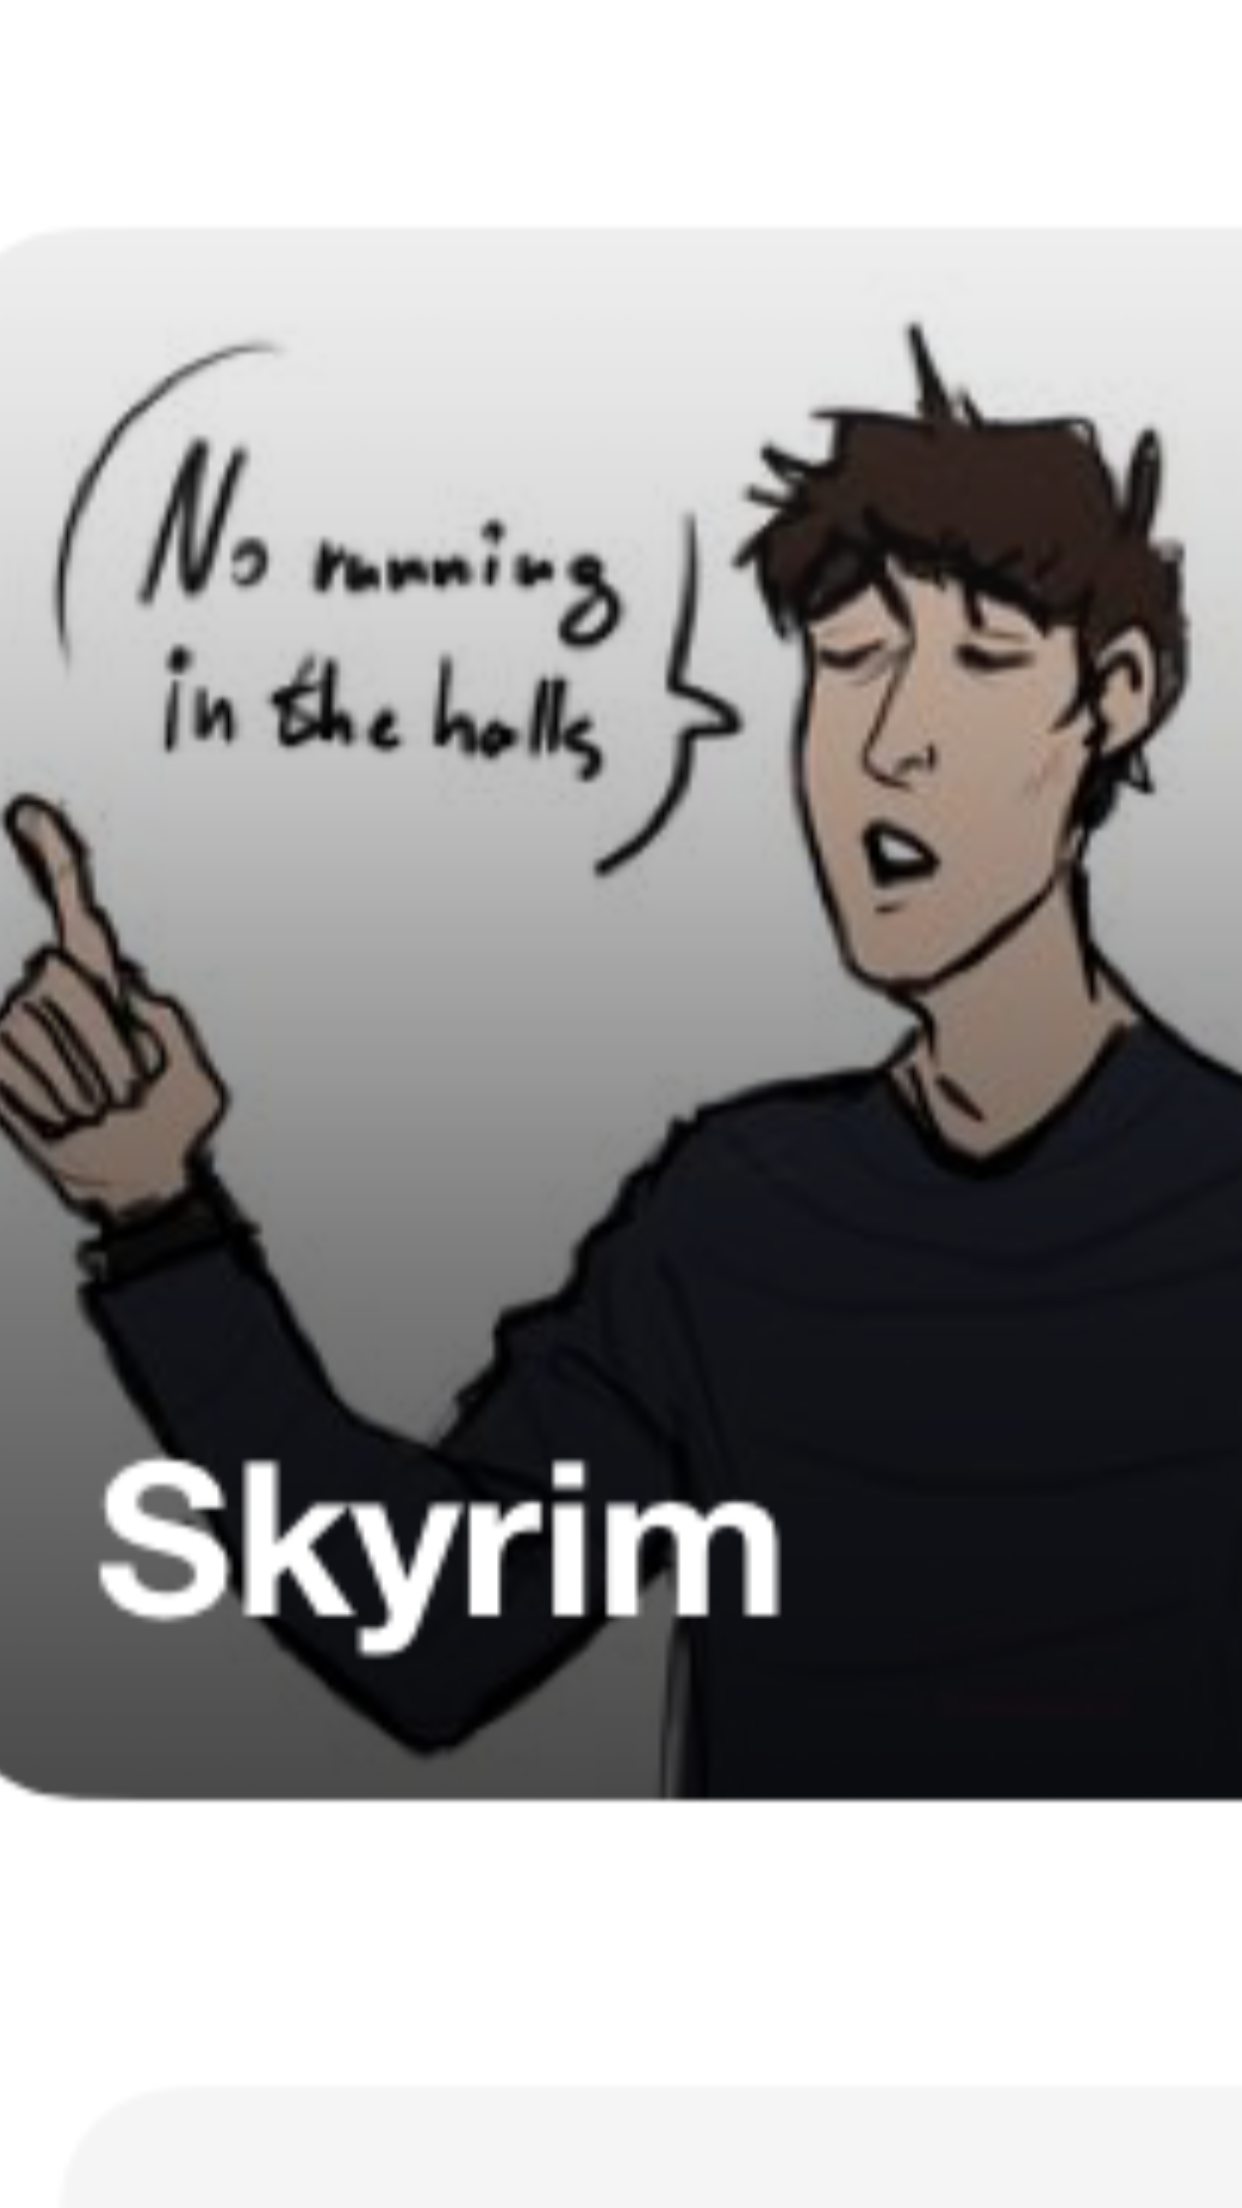 So Principal Of The Thing Is Actually From Skyrim Skyrim The Thing Is Okay Gesture